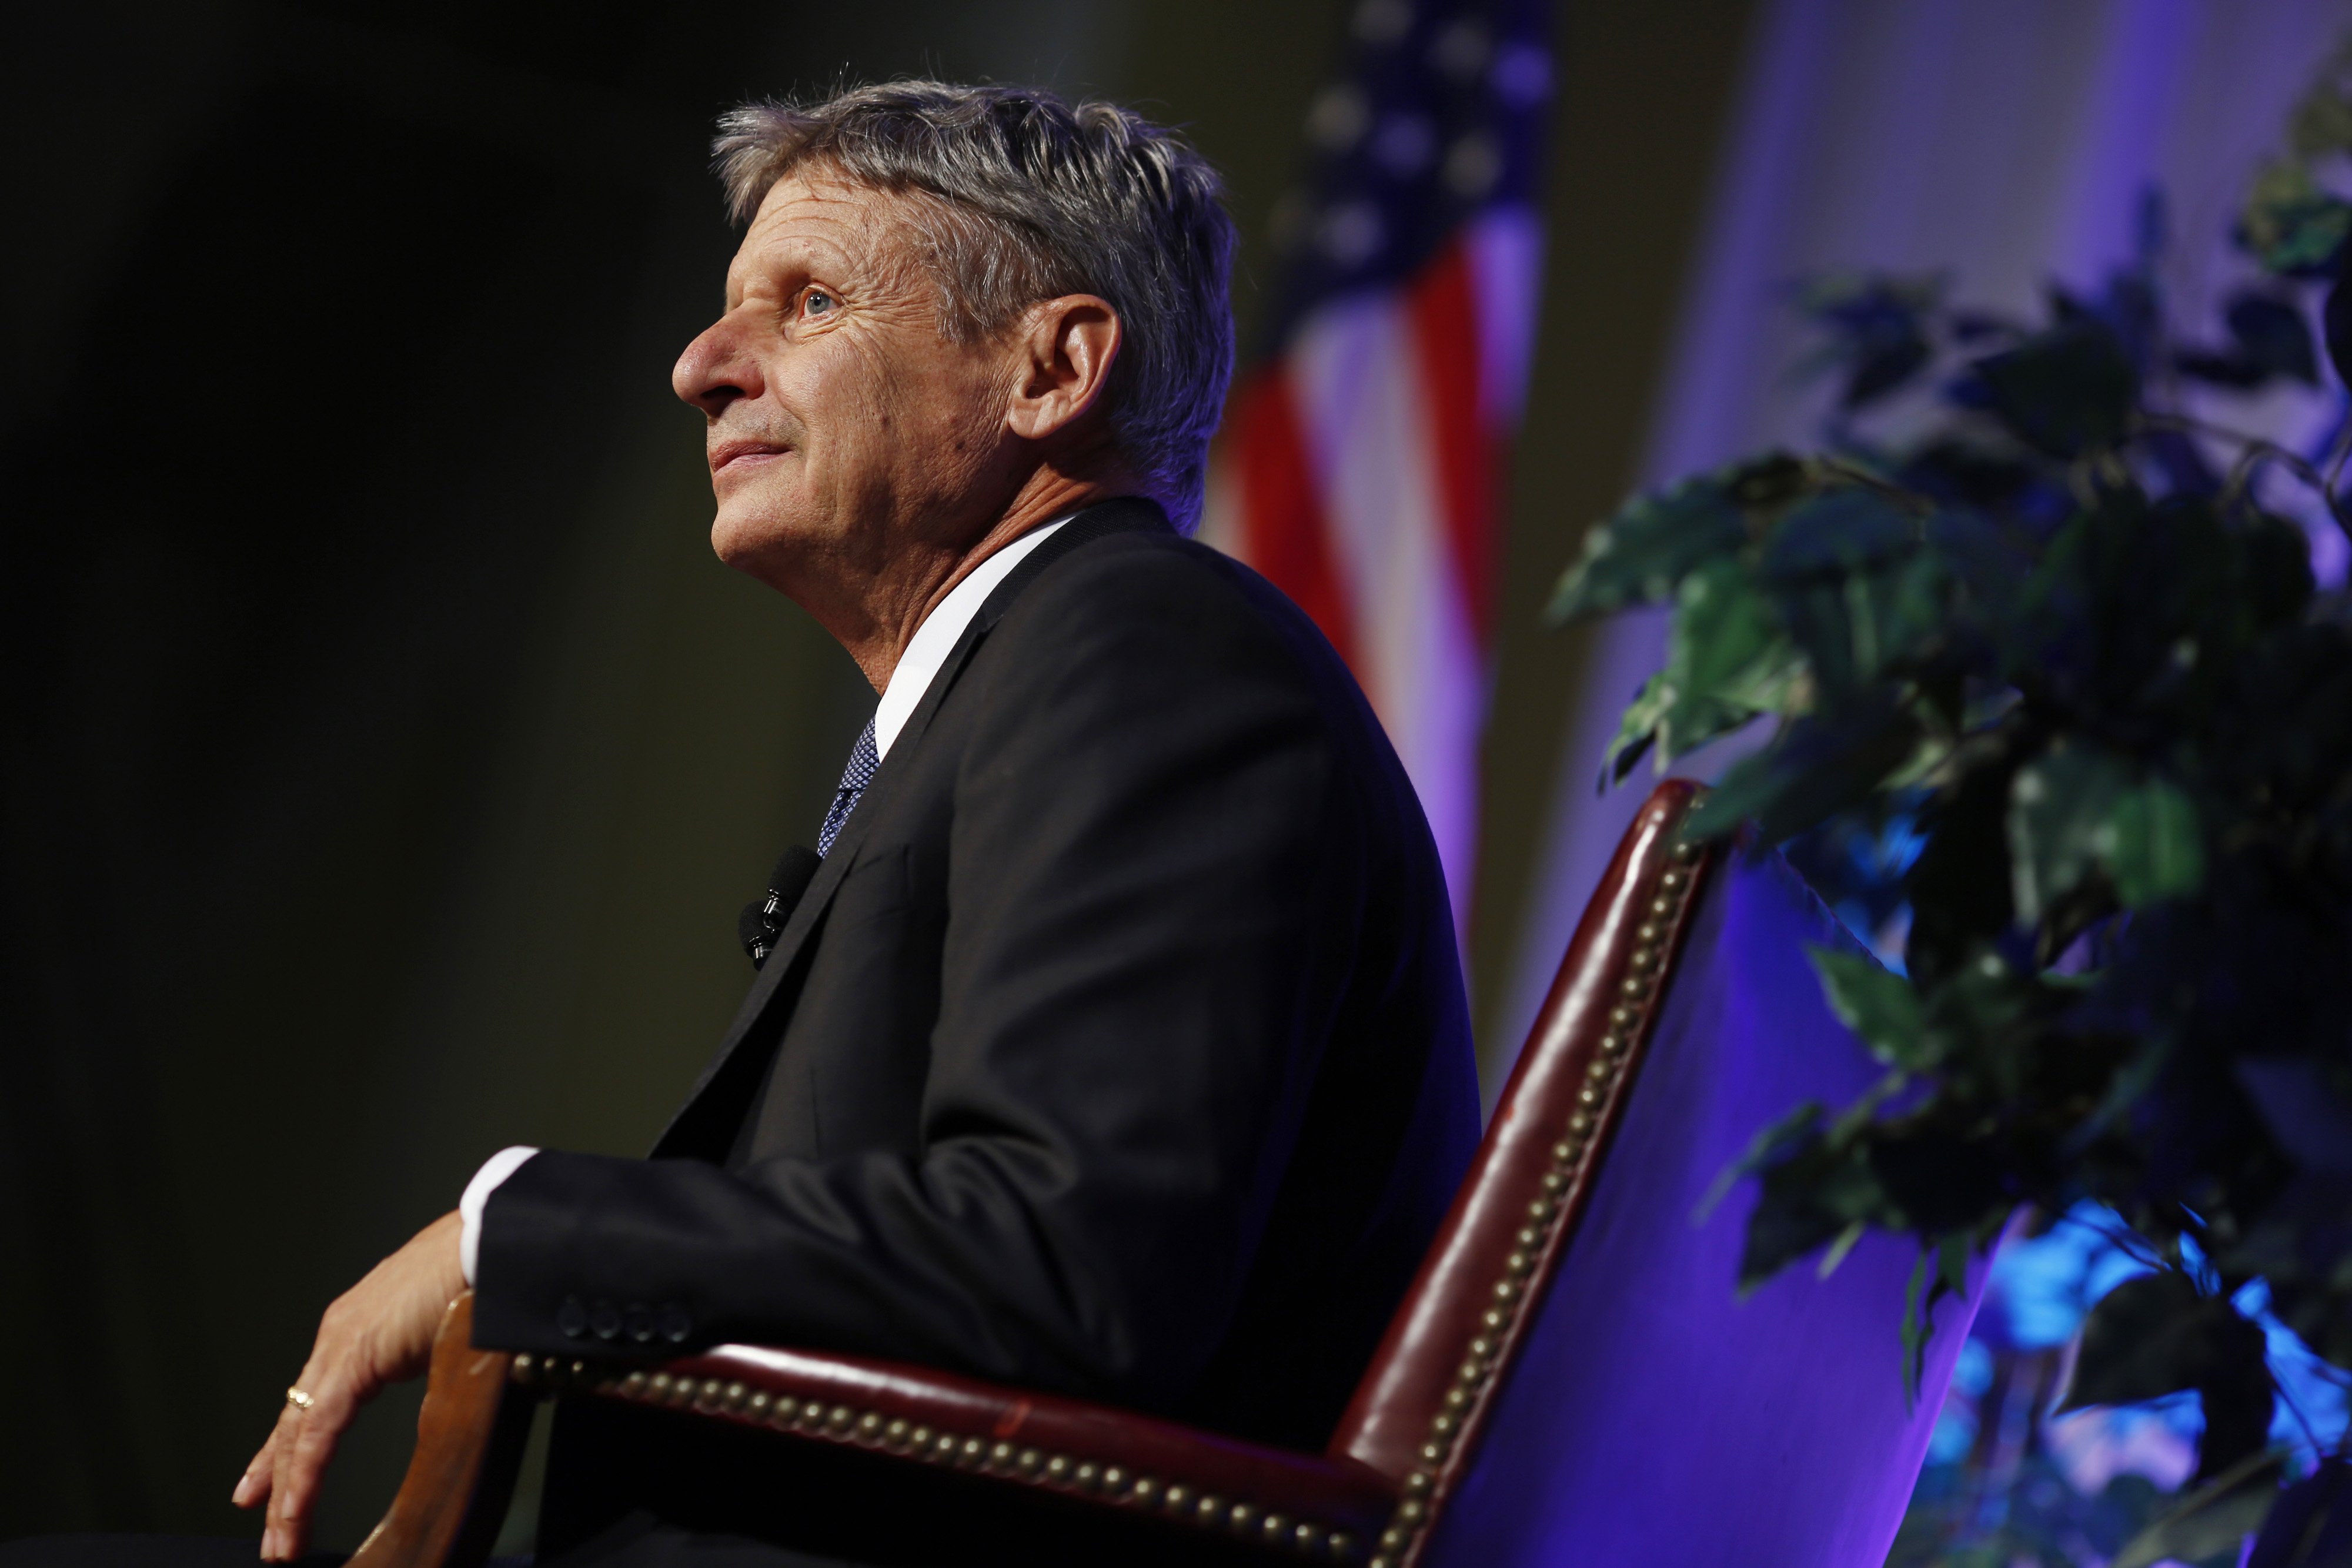 Gary Johnson, 2016 Libertarian presidential nominee, listens during a campaign event at Purdue University in West Lafayette, Indiana, U.S., on Tuesday, Sept. 13, 2016.